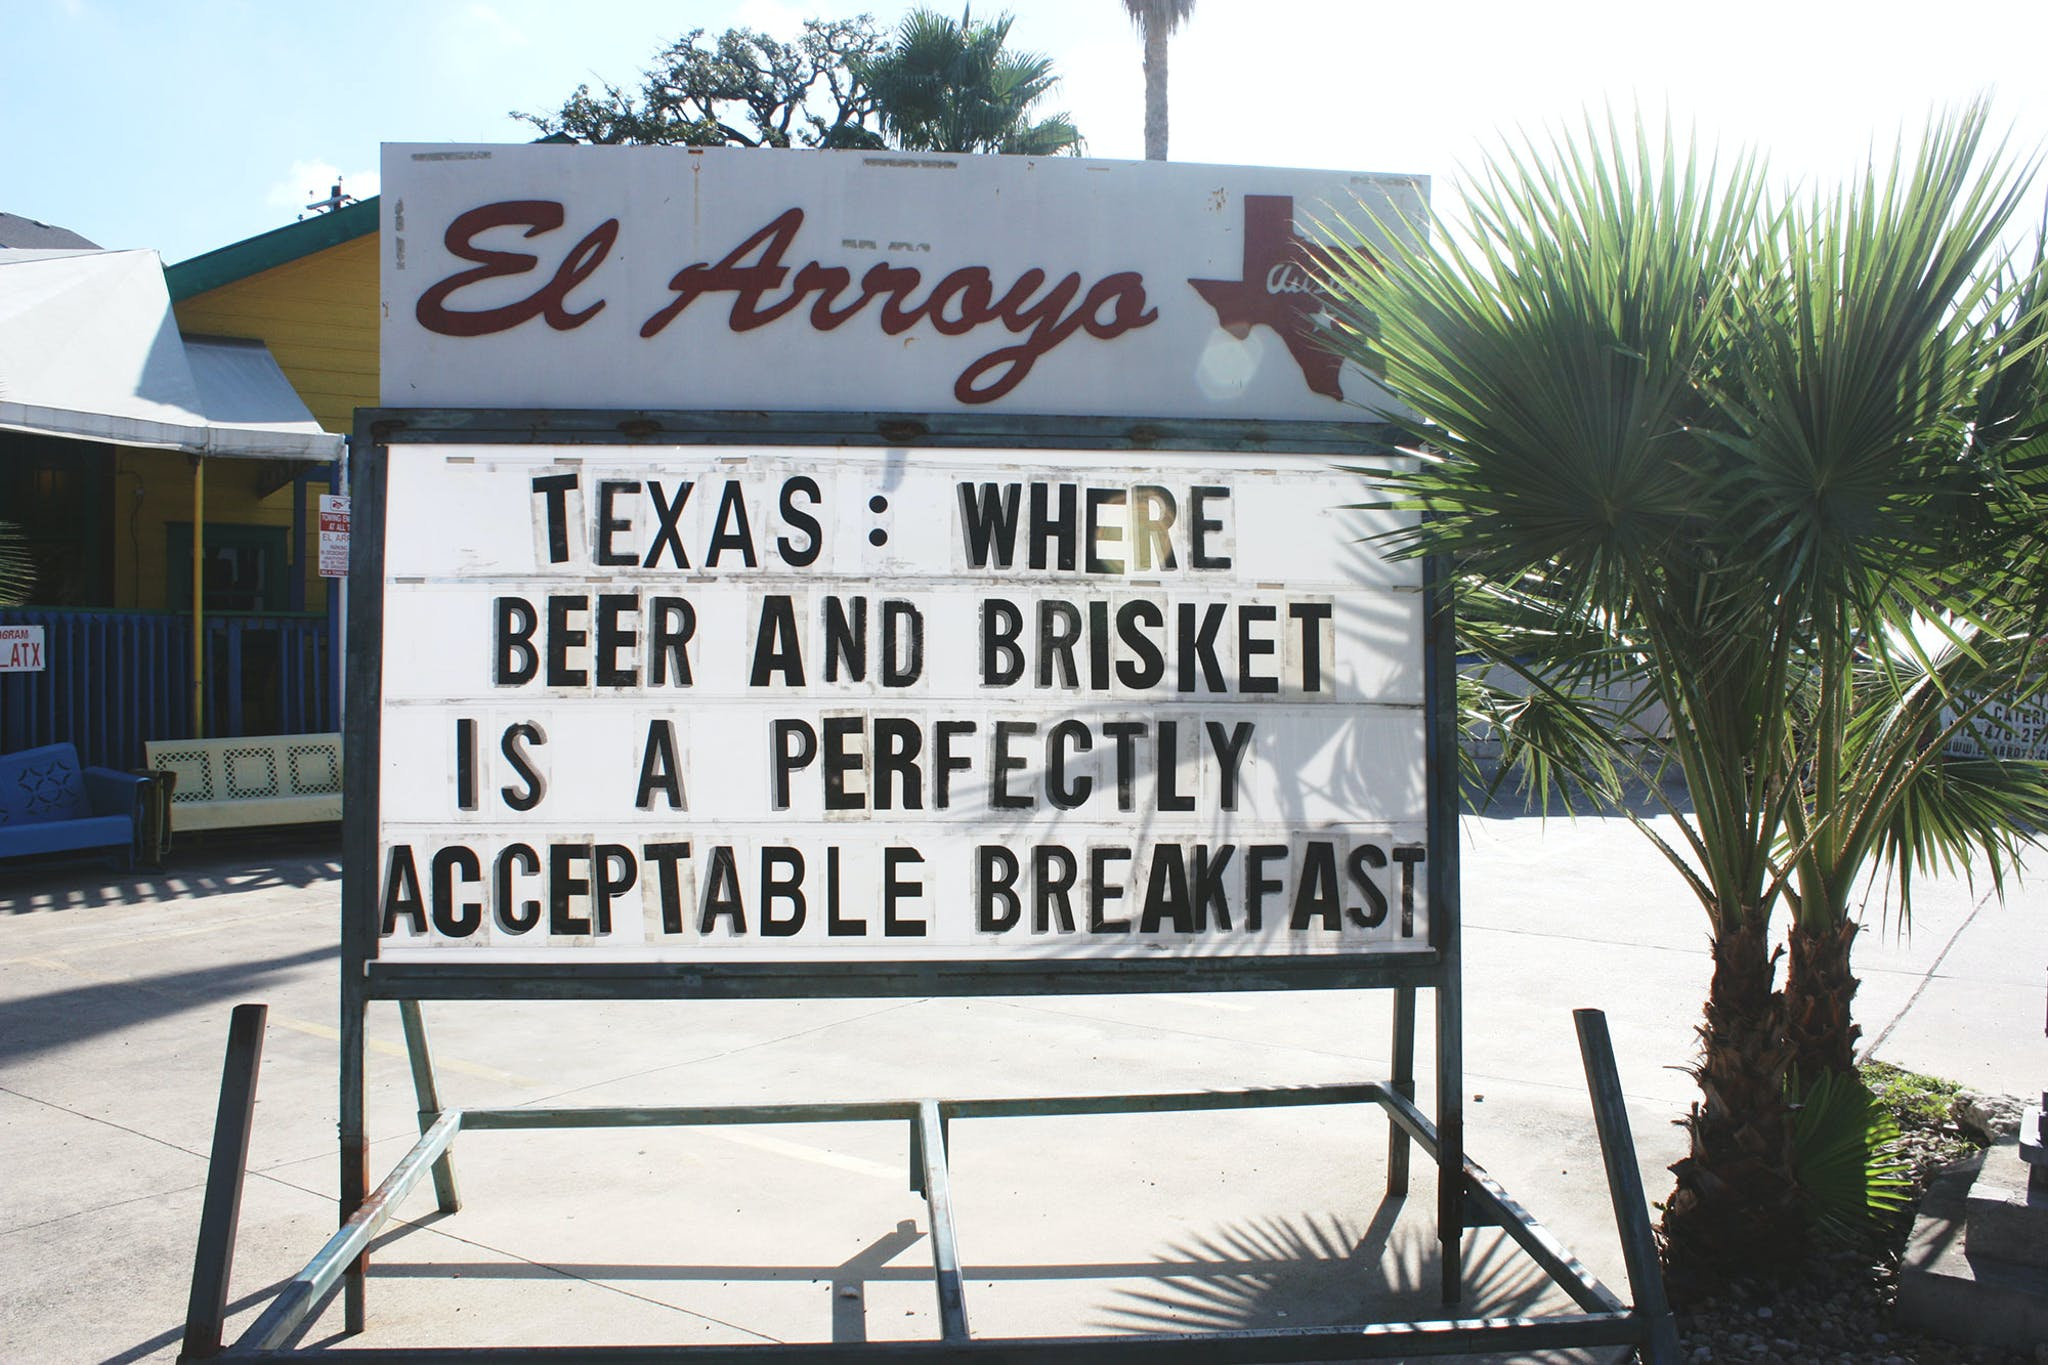 El Arroyo Sign says Texas: Where beer and brisket is a perfectly acceptable breakfast.